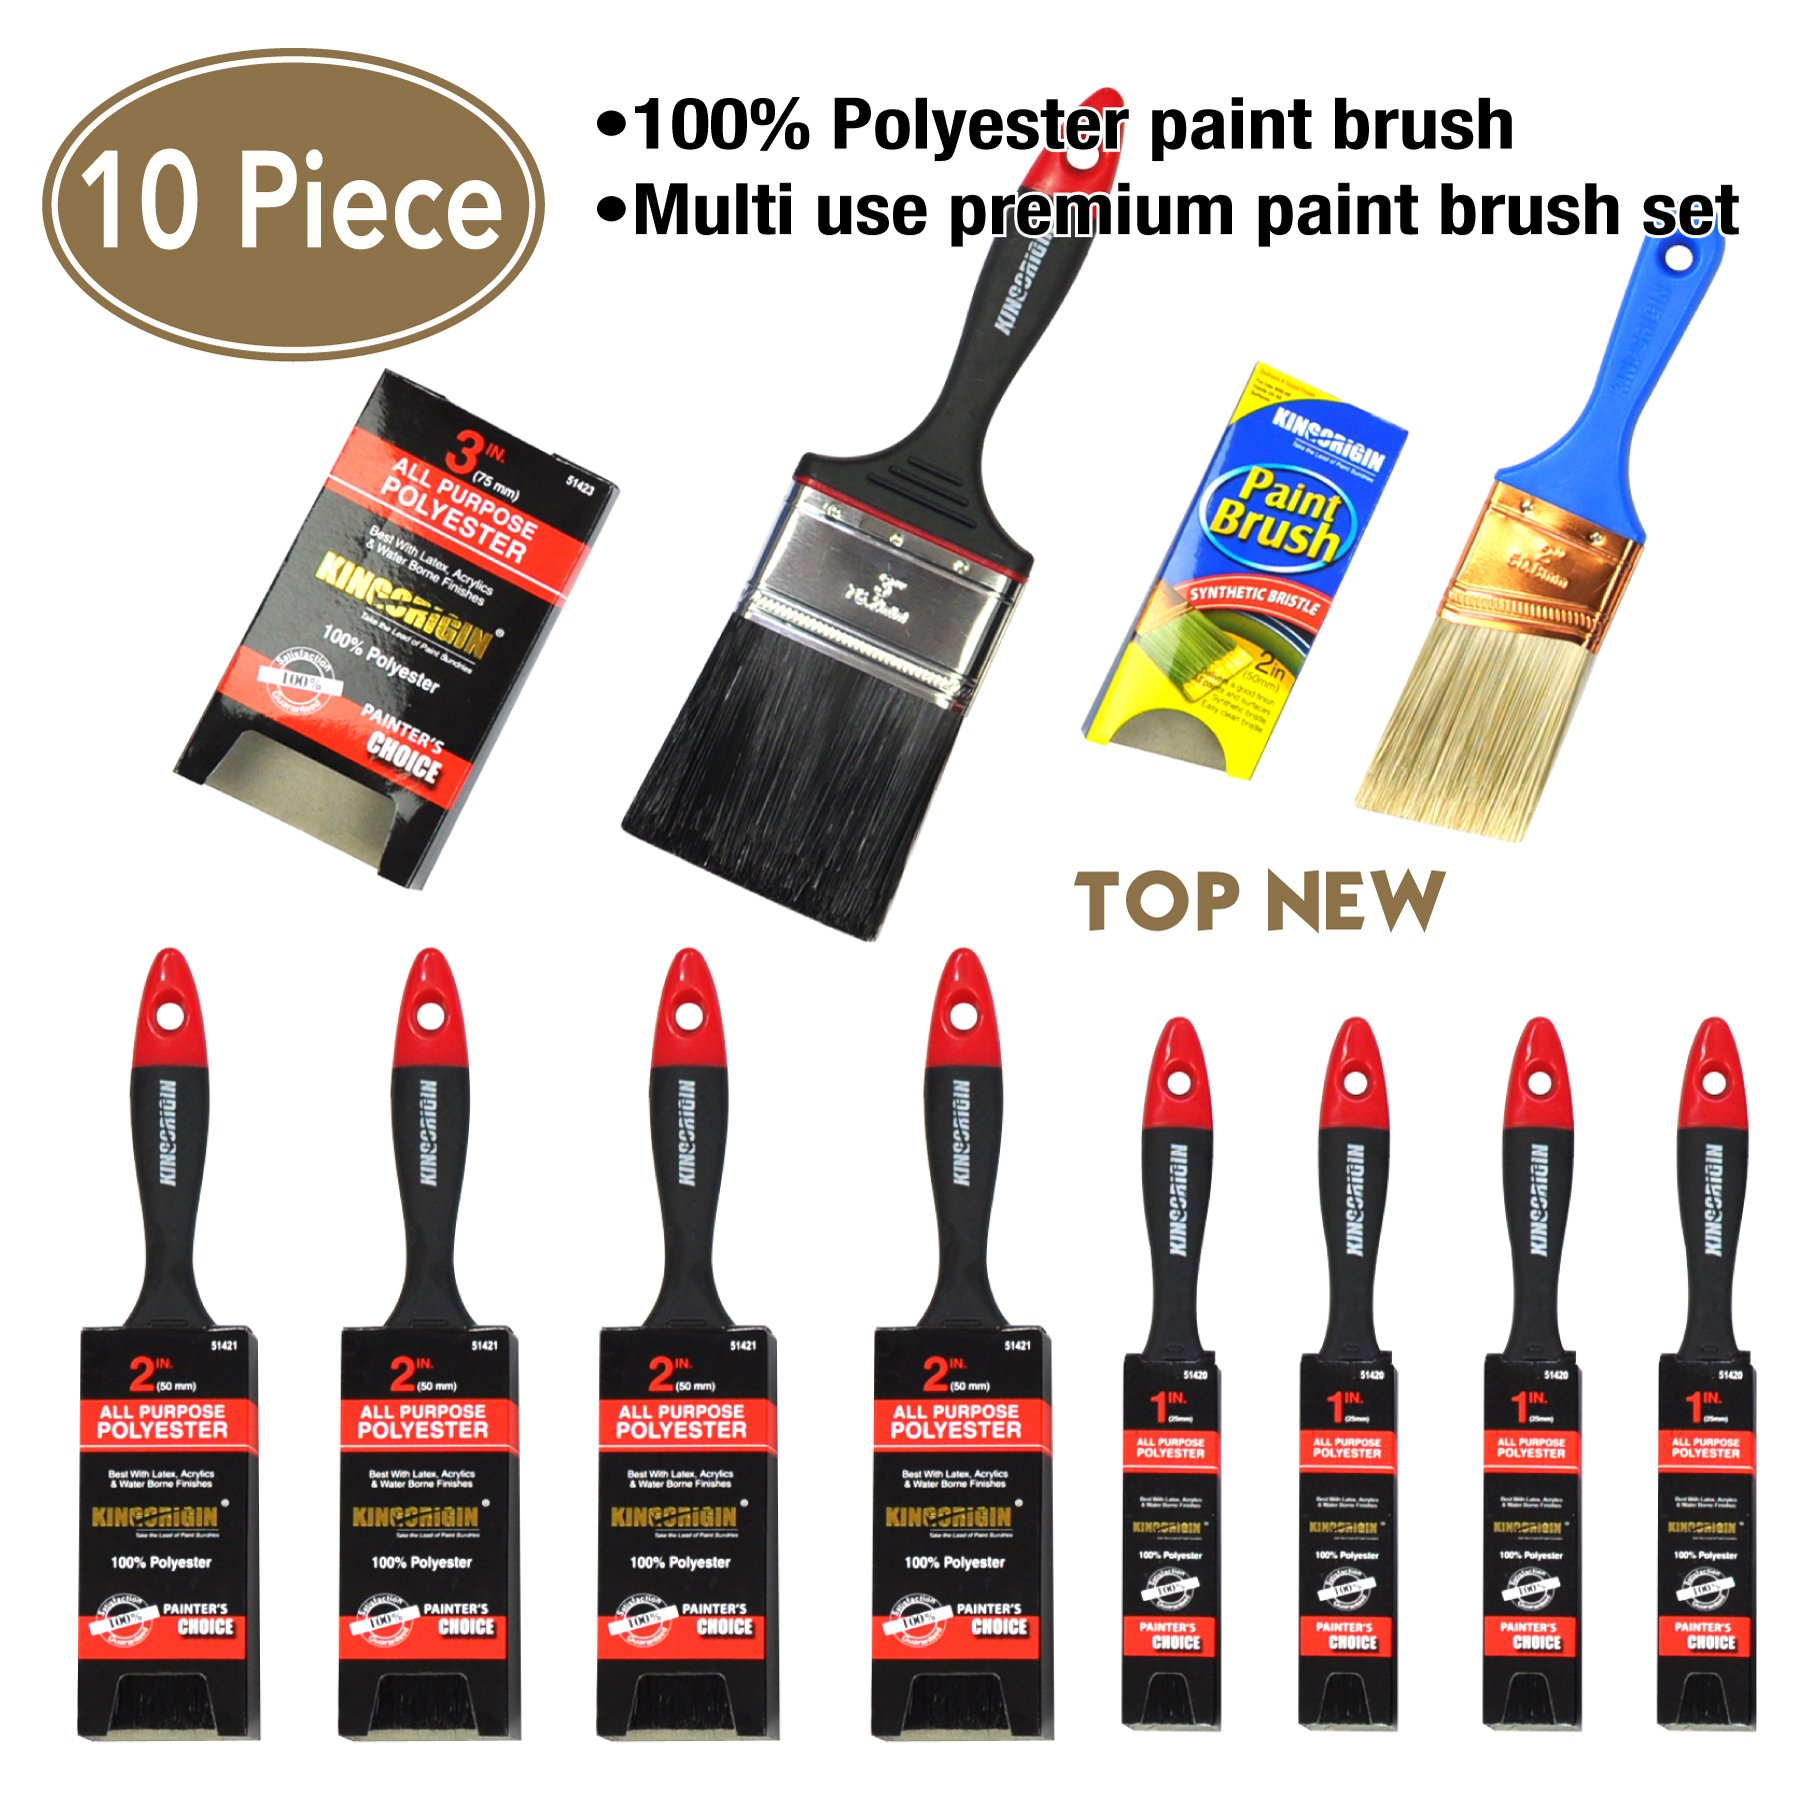 10 Piece Professional painters Soft Grip handle multi use,paint brush,paint brushes,paint brush for kids,paint brush set,angle sash paint brush,home repair tools,tools